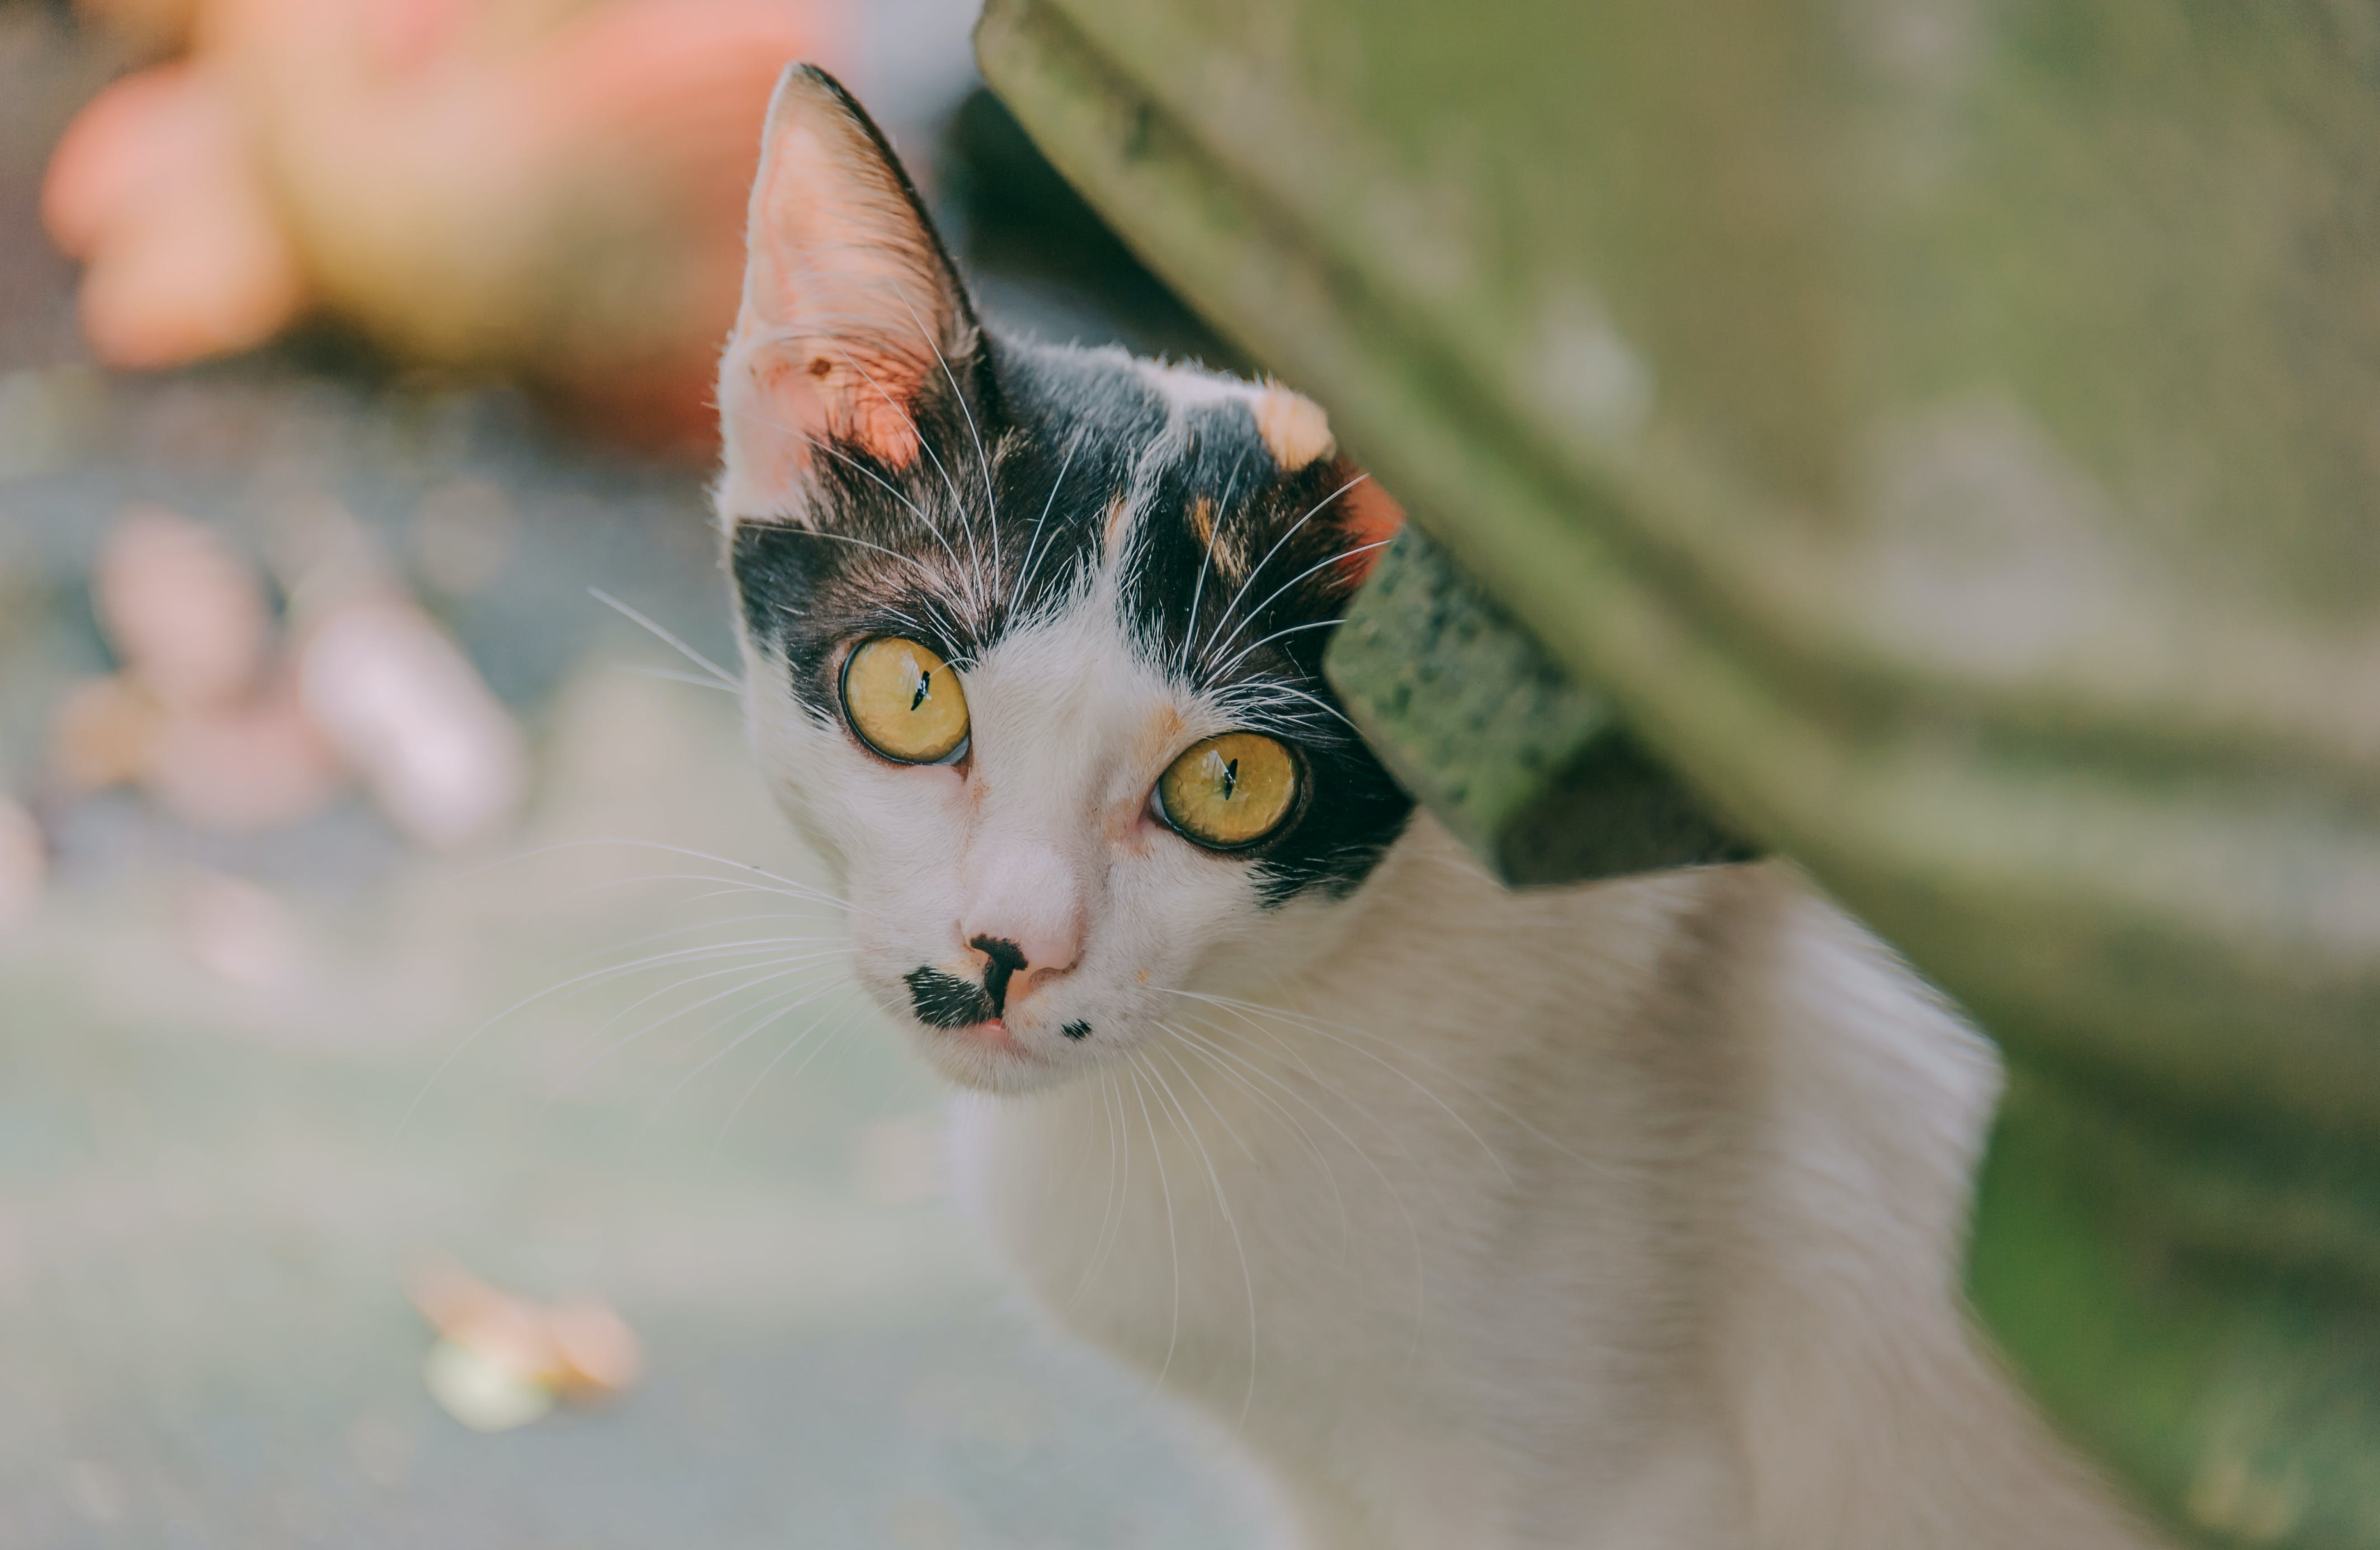 Close-up Photography of White and Black Cat